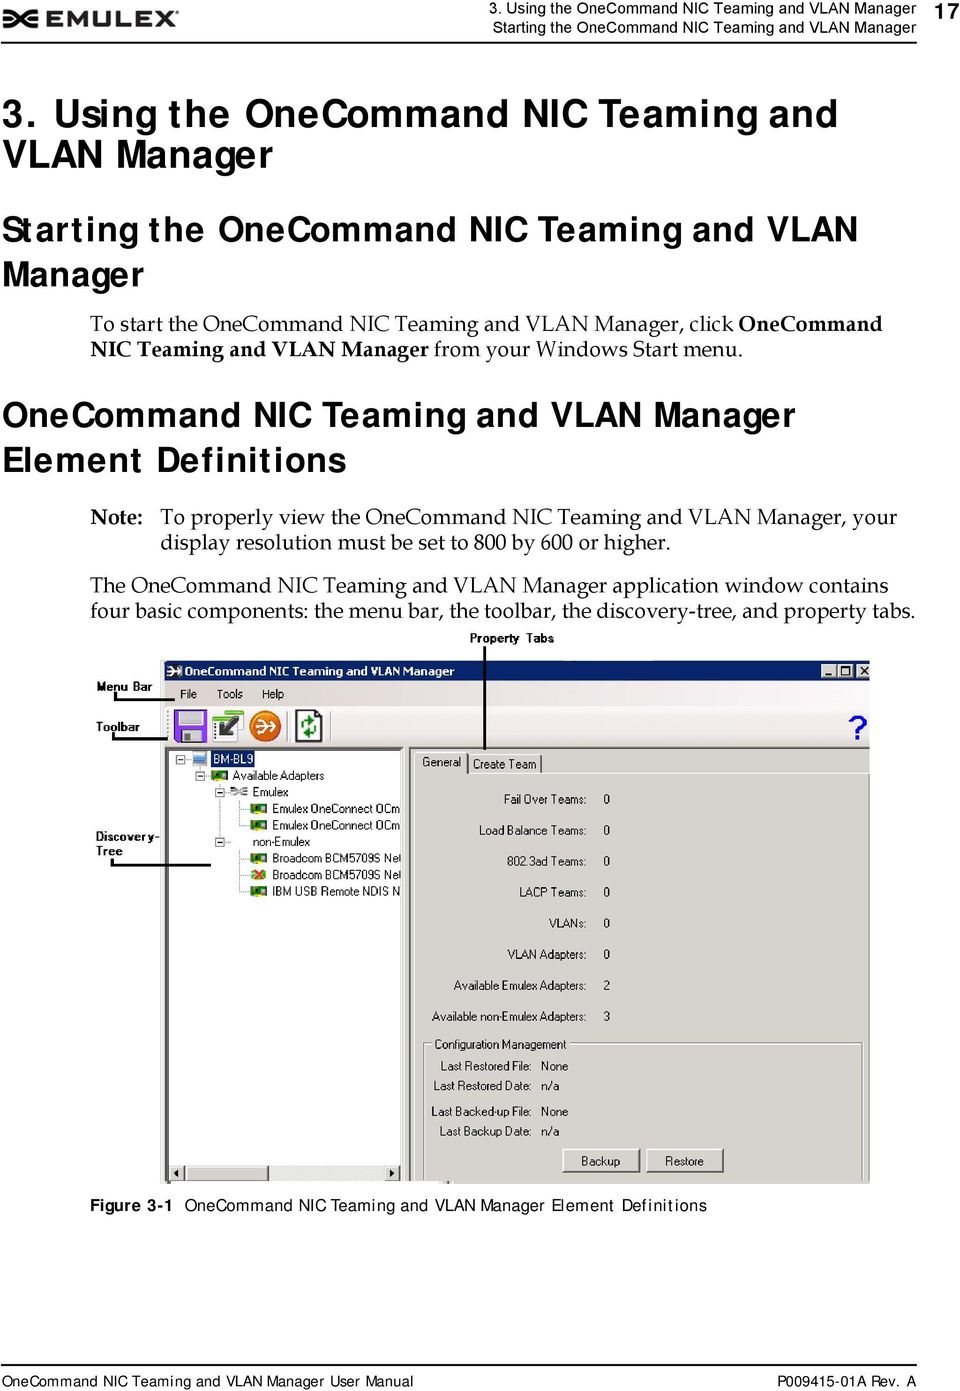 OneCommand NIC Teaming and VLAN Manager Version 2 8 User Manual - PDF